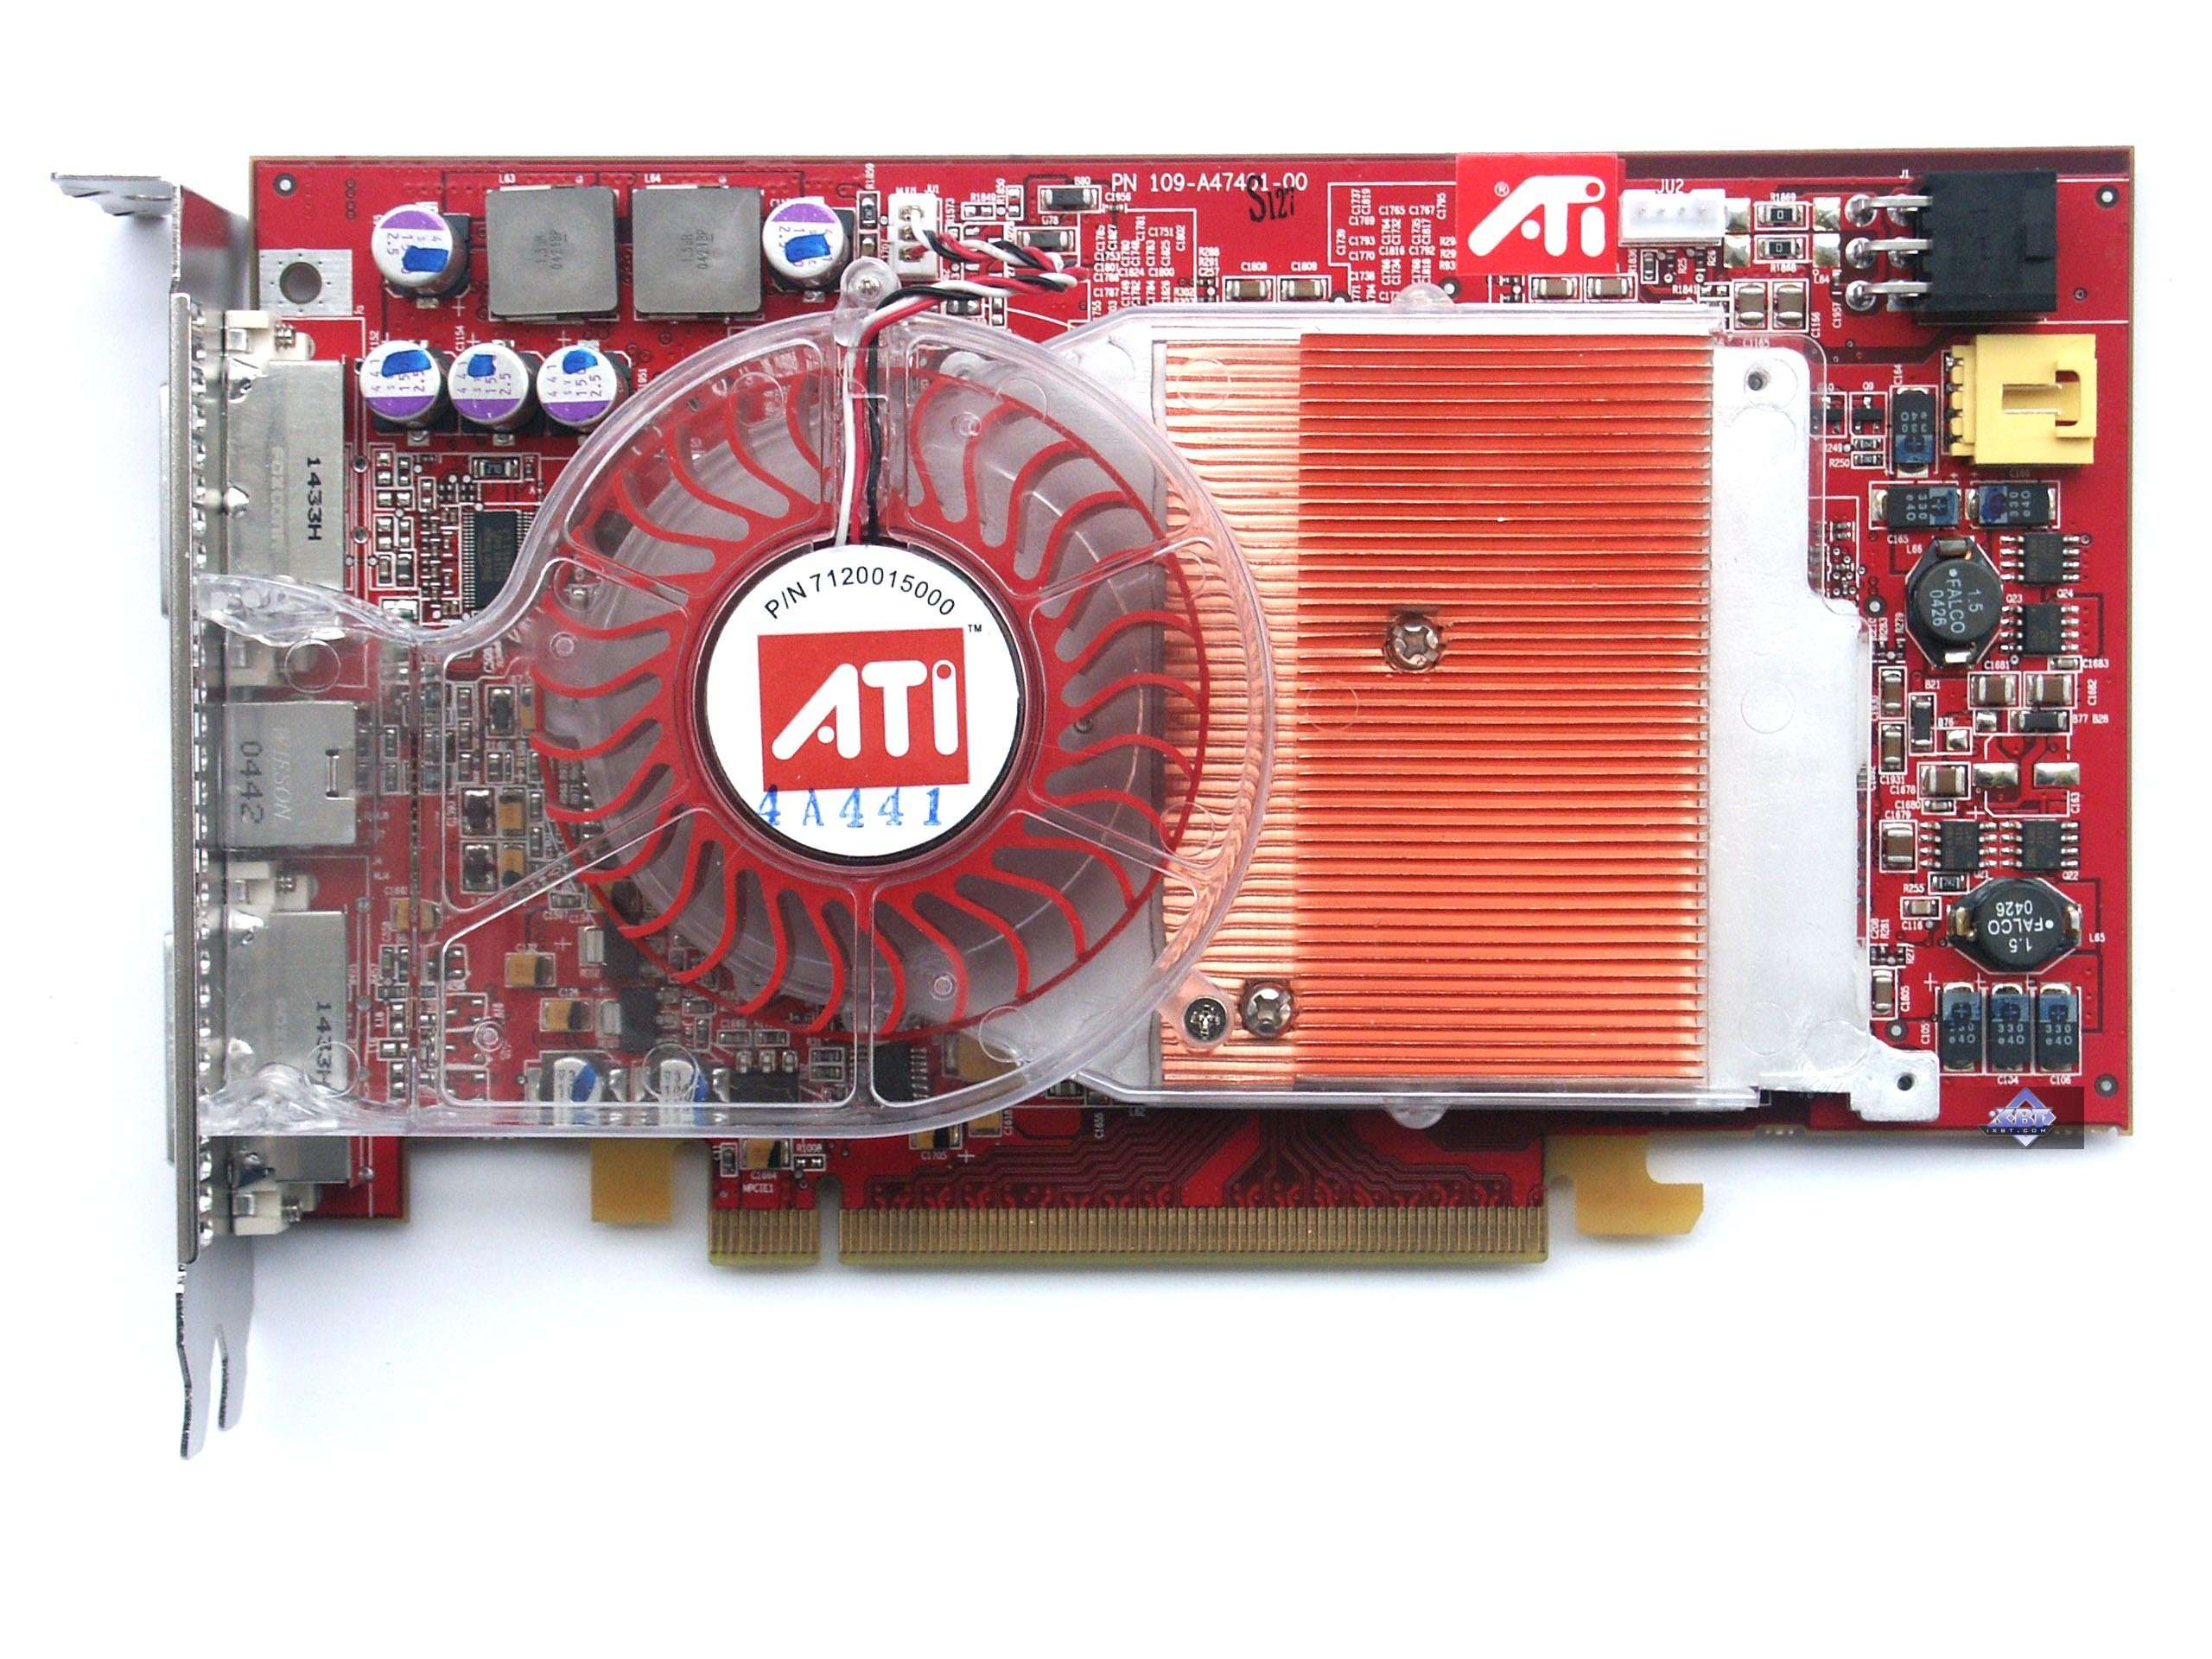 RADEON X850 PRO 256MB WINDOWS 8 X64 DRIVER